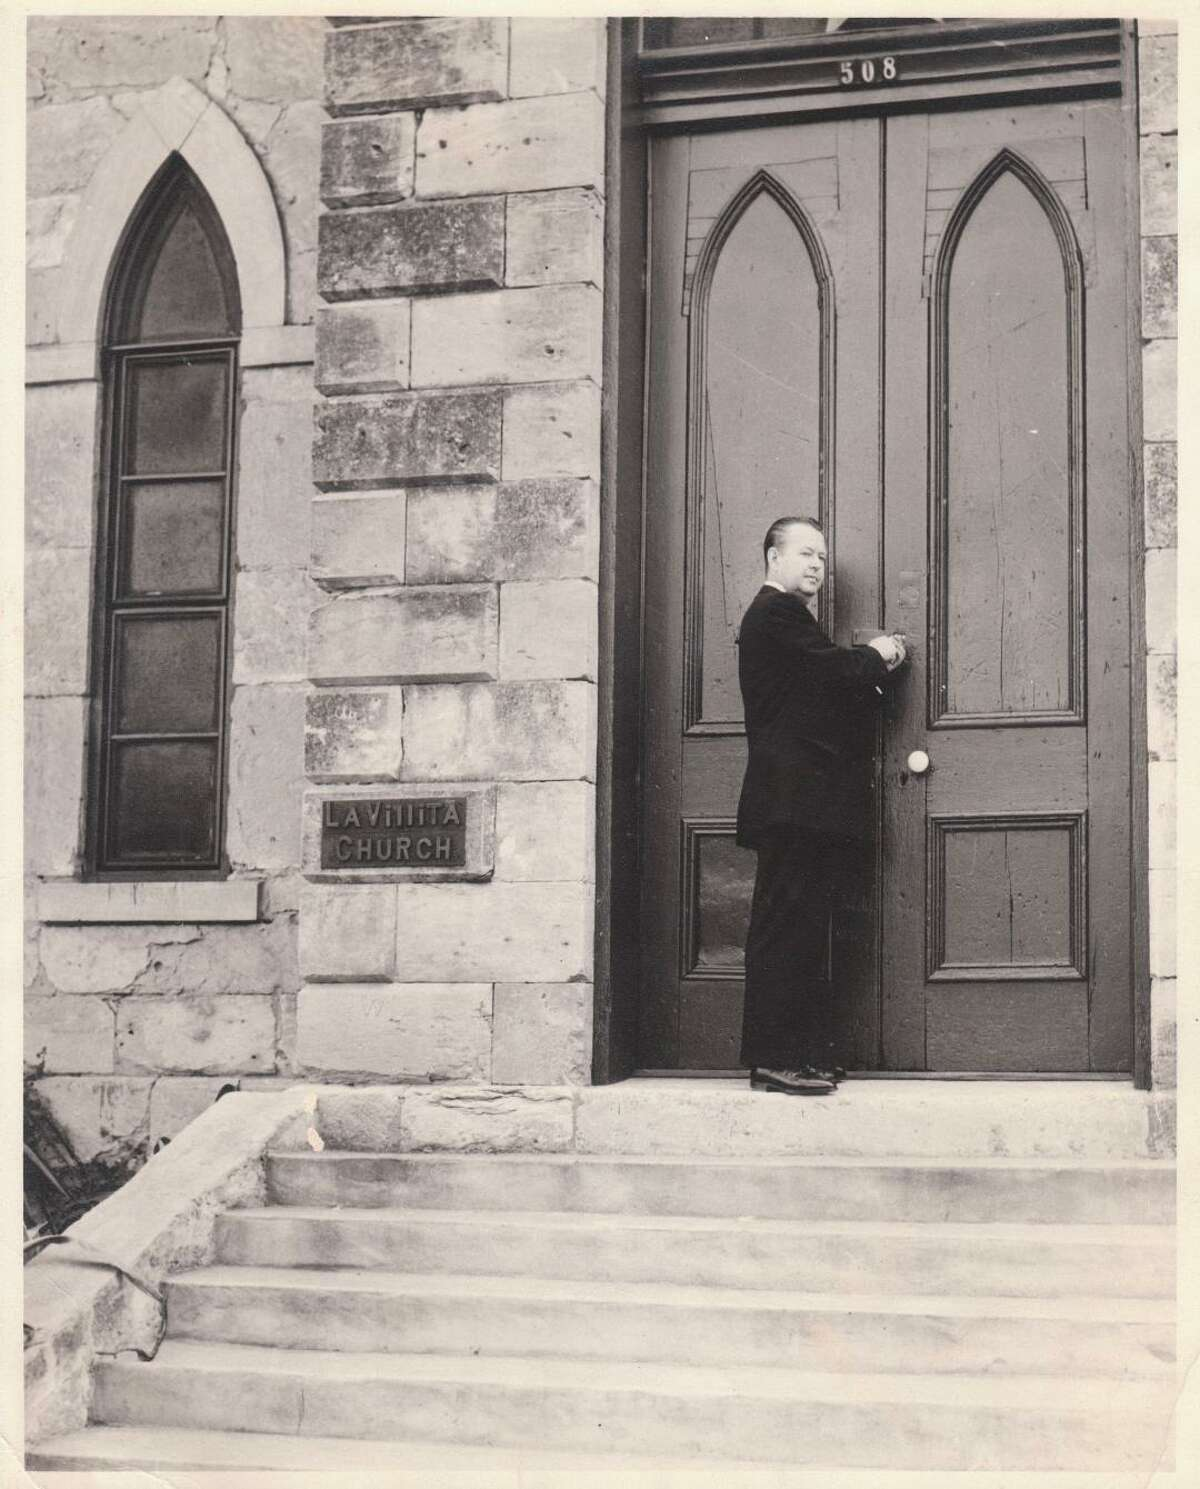 """The Rev. Paul Soupiset, shown here around the time he took possession of the La Villita church in 1957, made a career change from retail manager to minister to the city's neediest from the heart of downtown. His message of """"practical Christianity"""" appealed to others as well"""